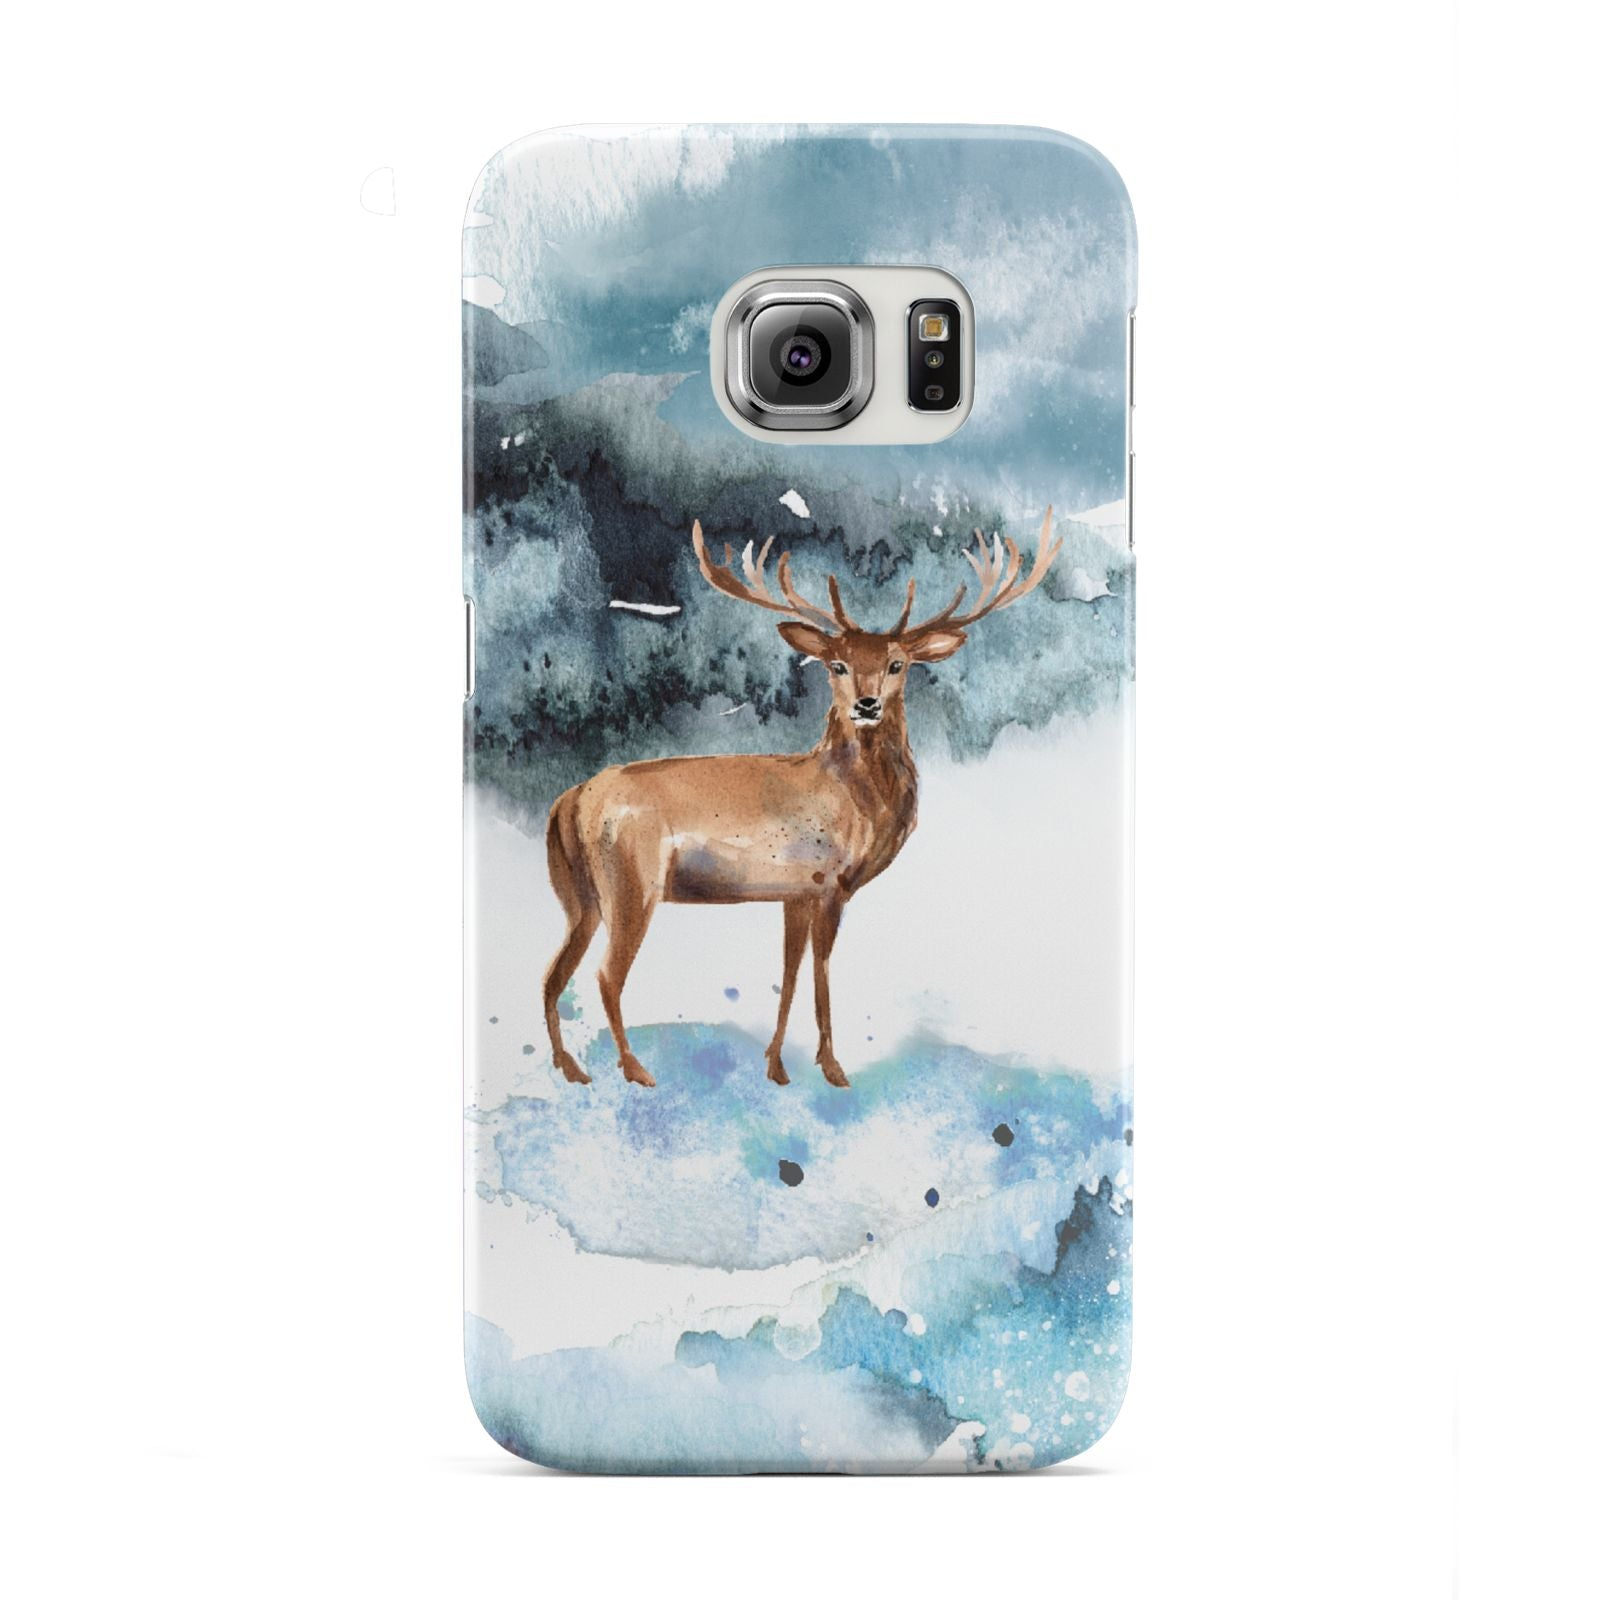 Christmas Winter Stag Samsung Galaxy S6 Edge Case